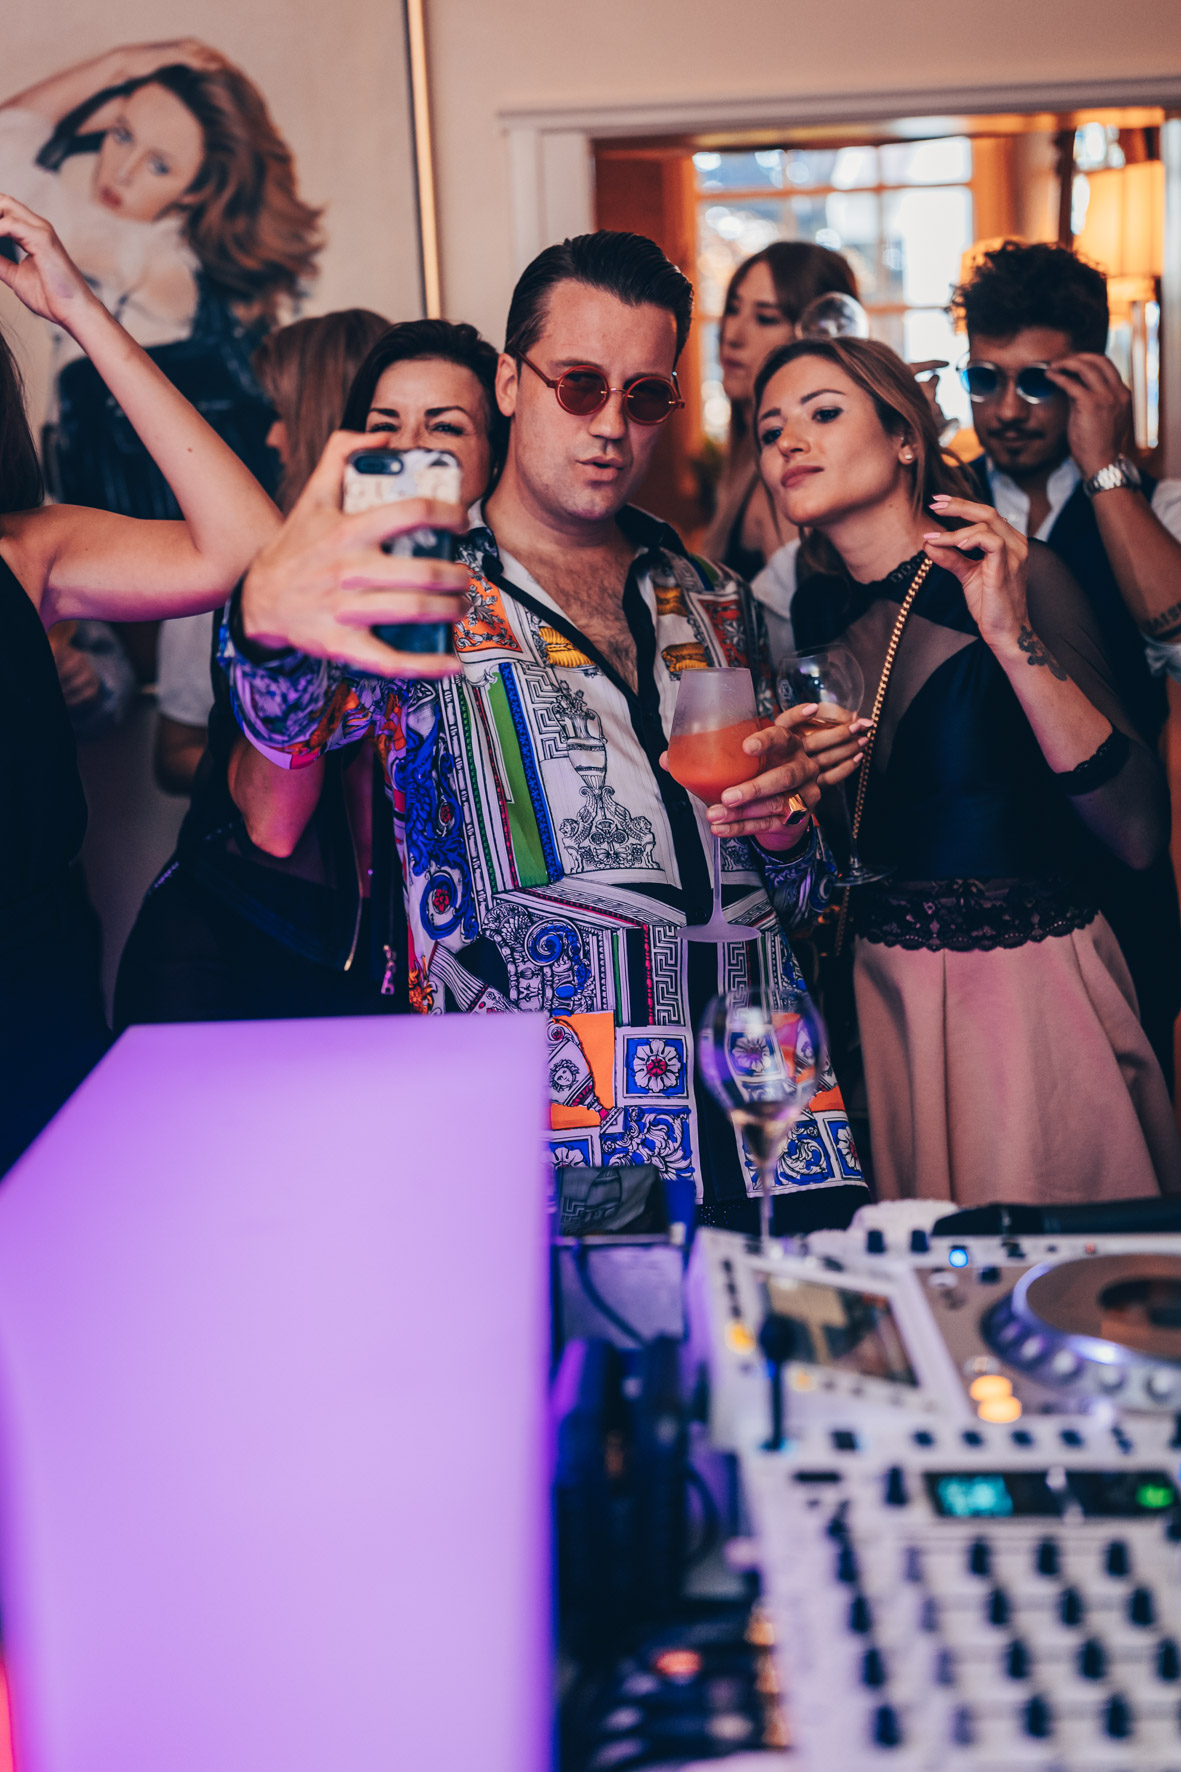 Konrad-lifestyle-art-basel-%22belvedere-secret-sunday%22-2019-91.jpg